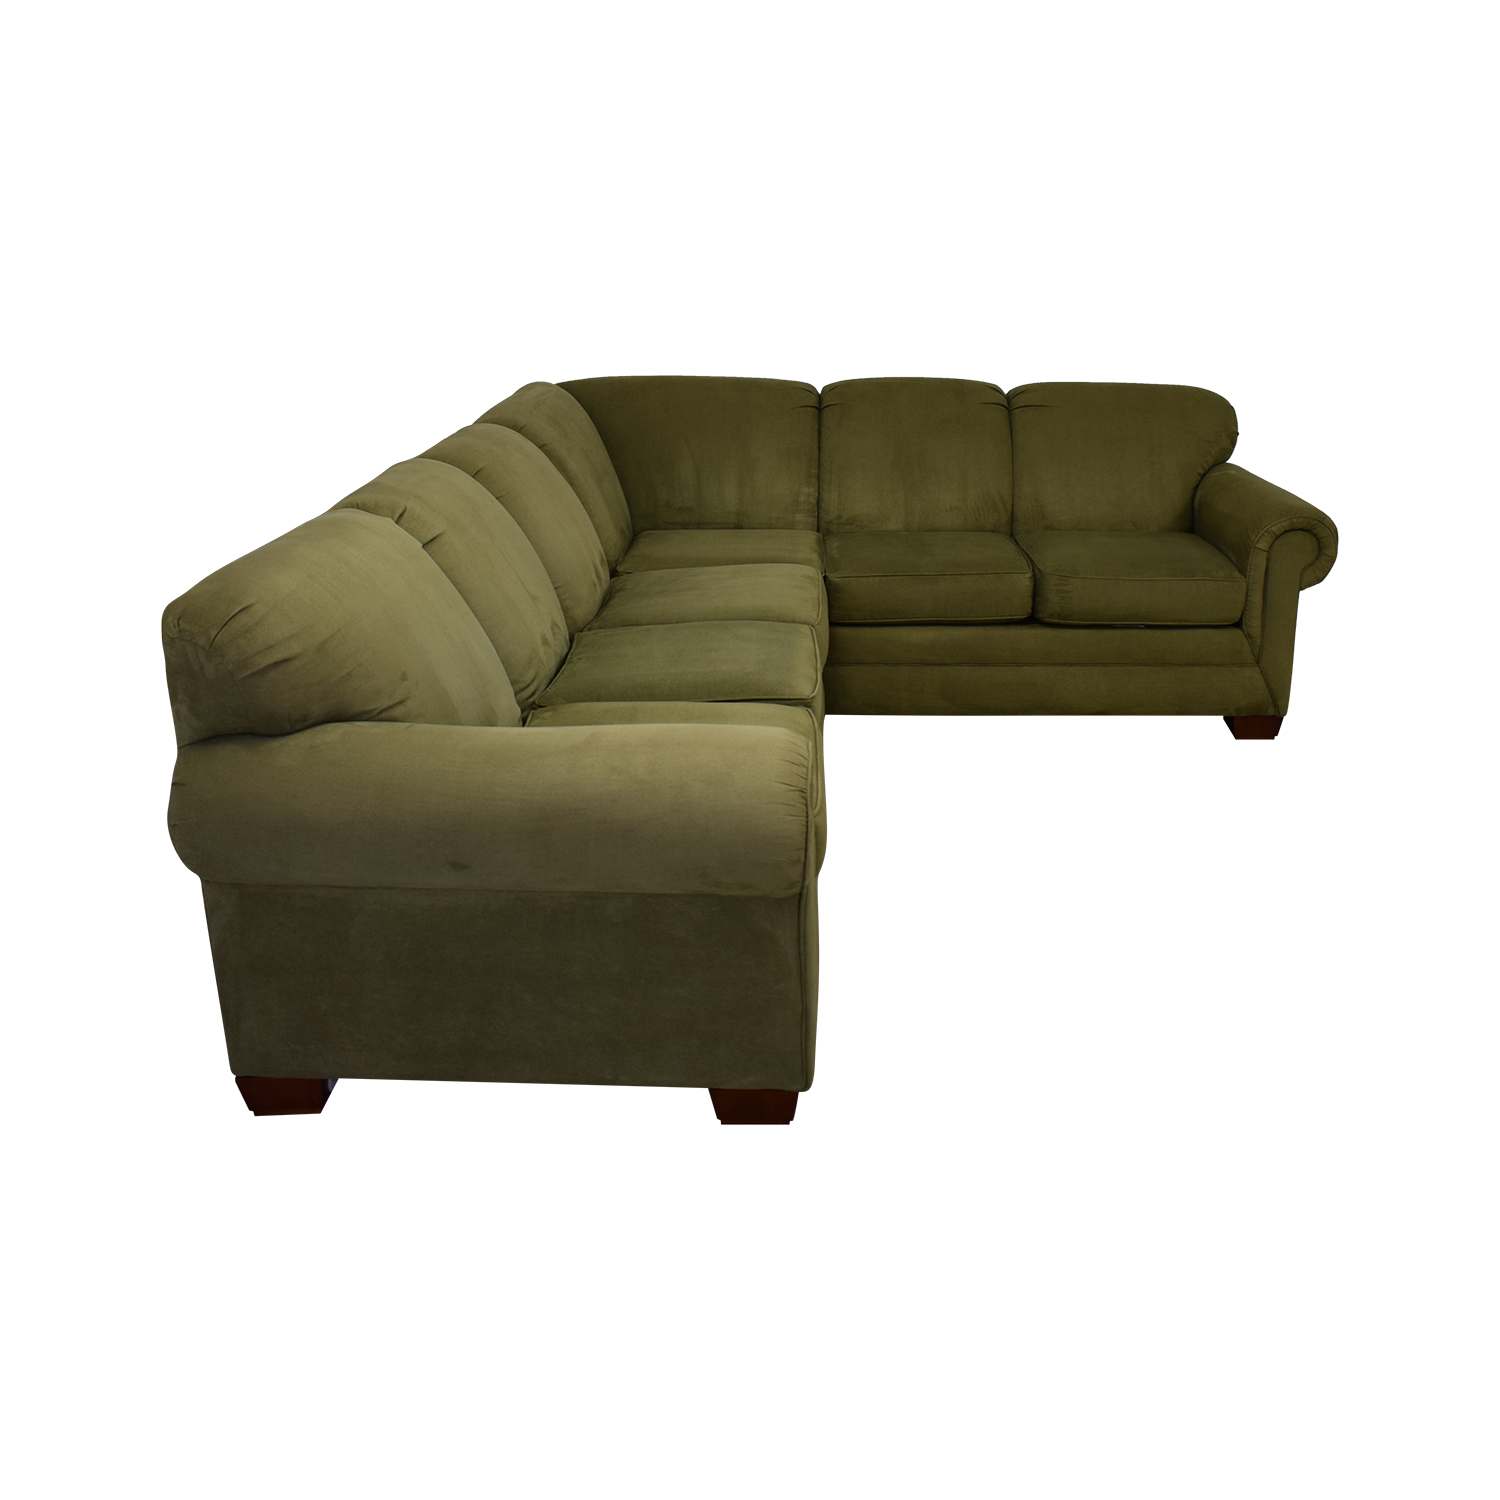 England Furniture England Furniture Green Sectional nj